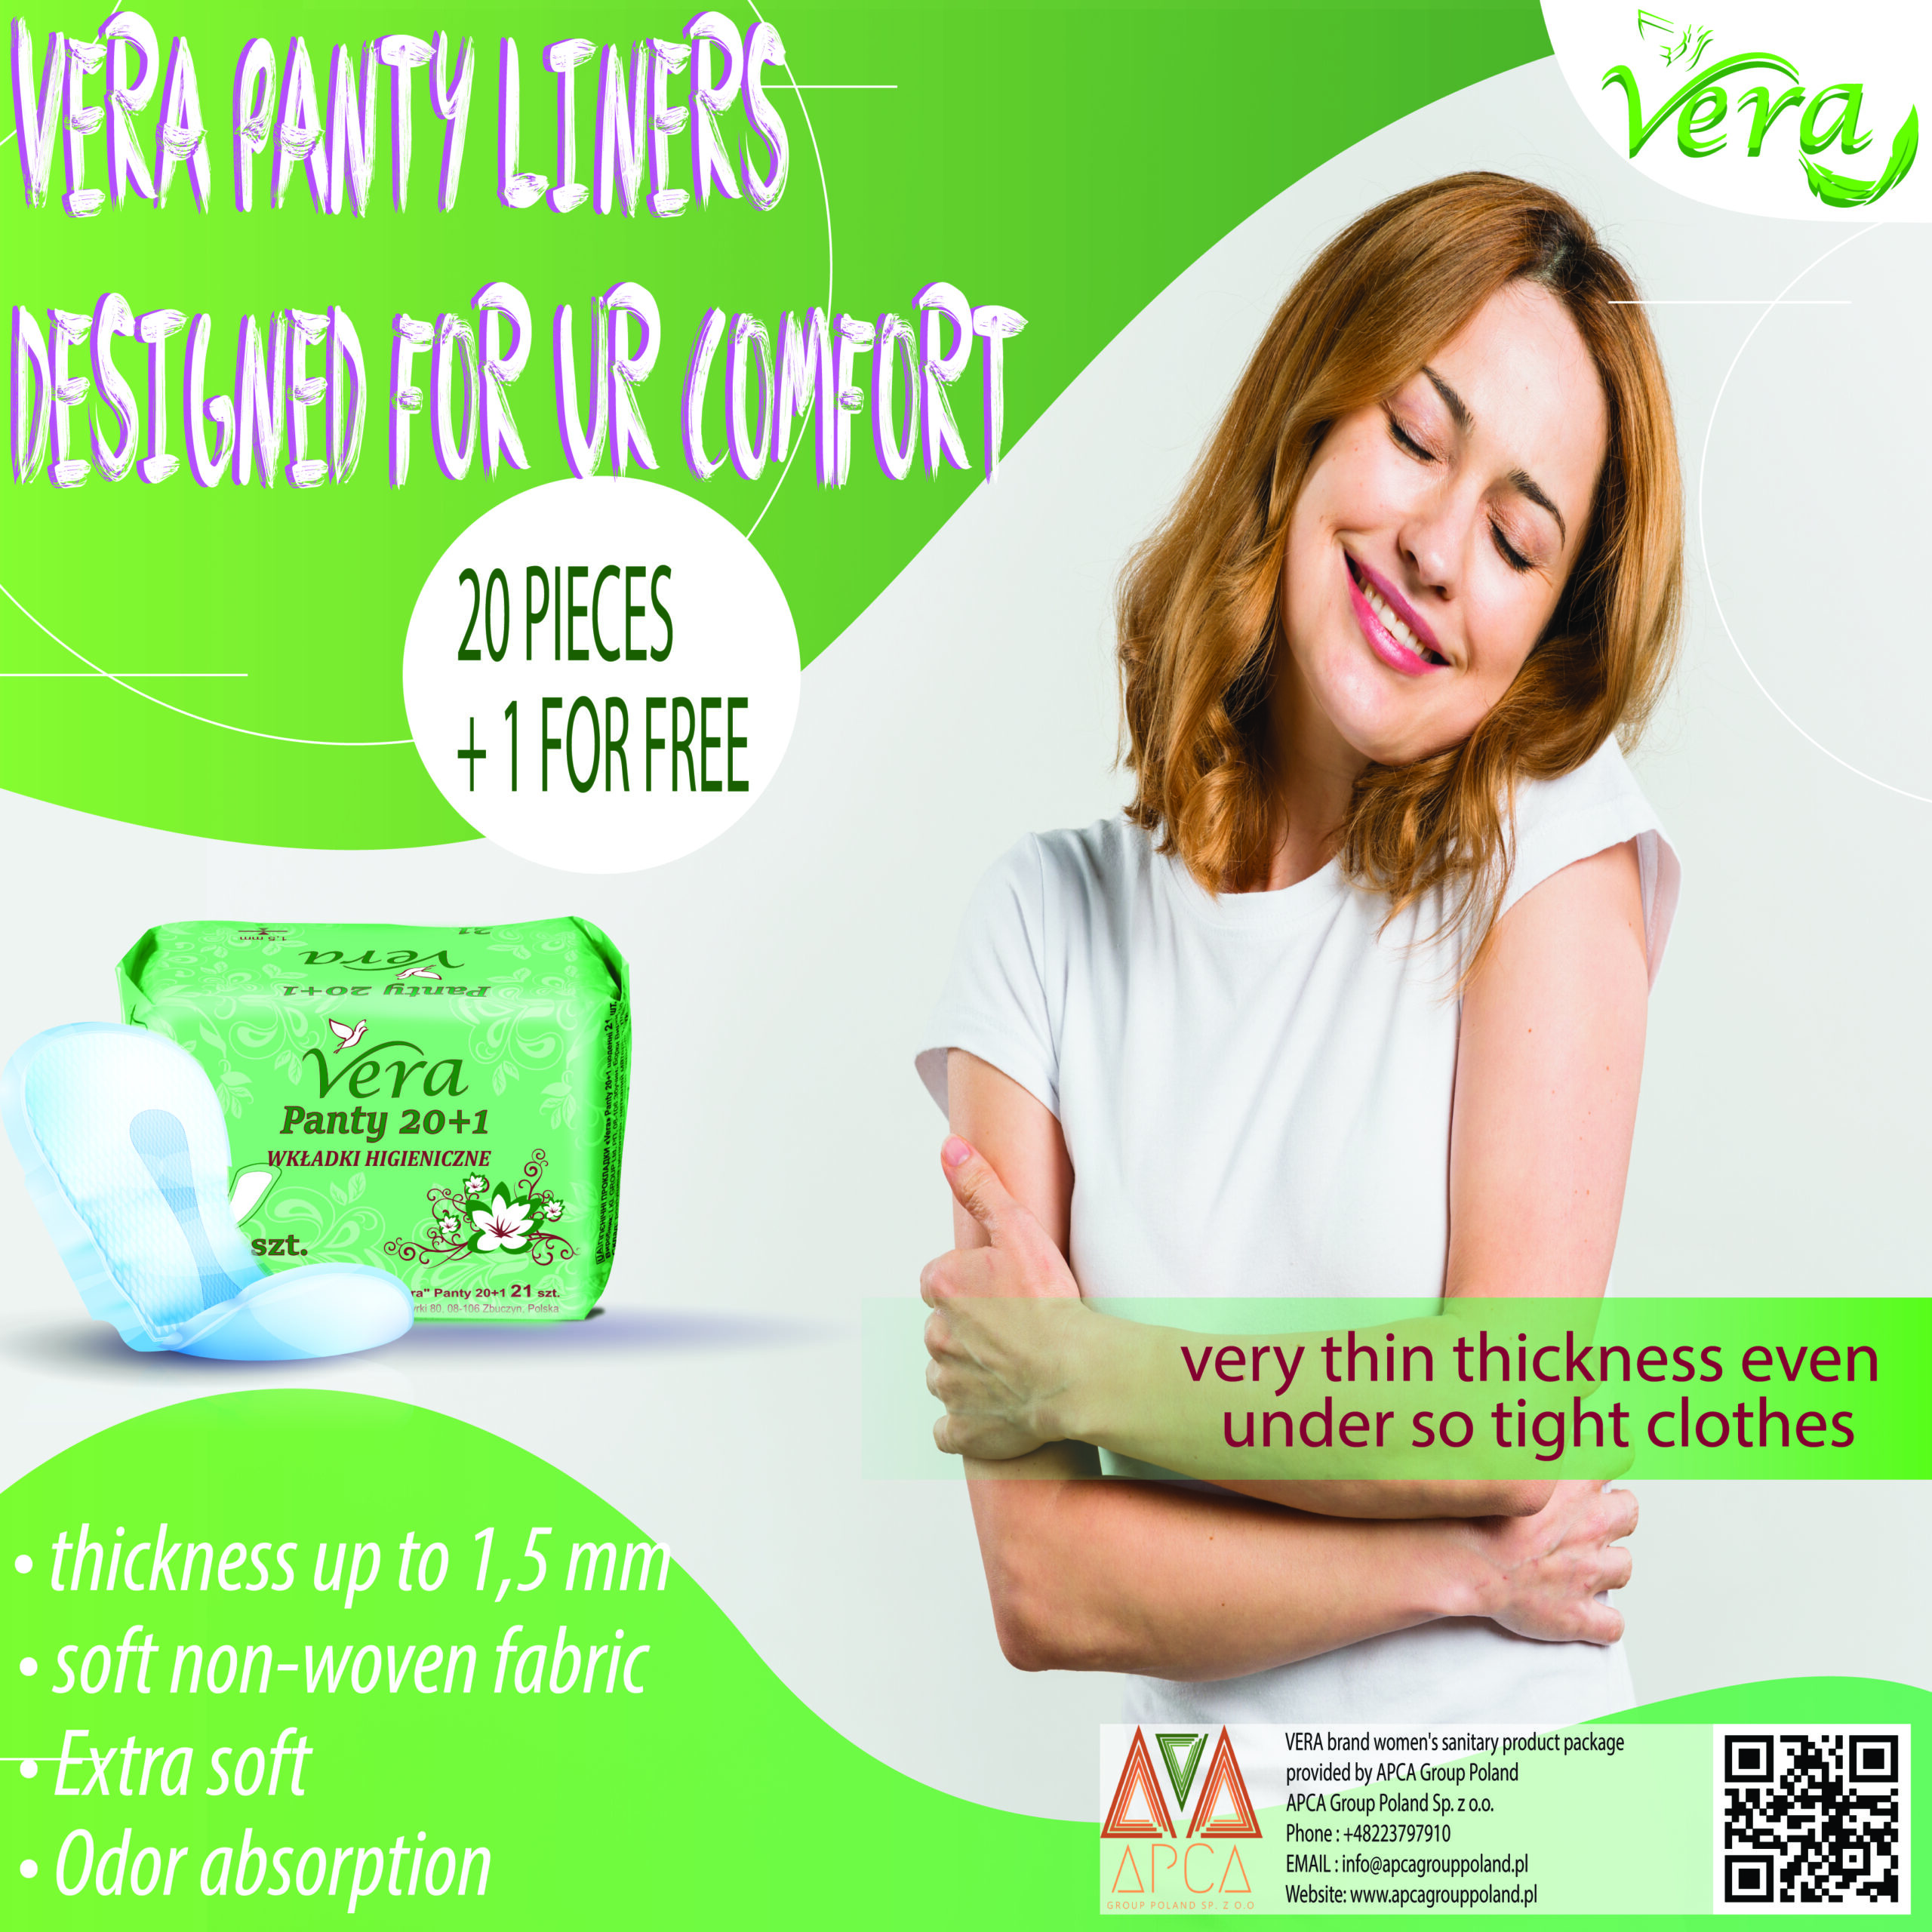 Panty liners 20+1 for free